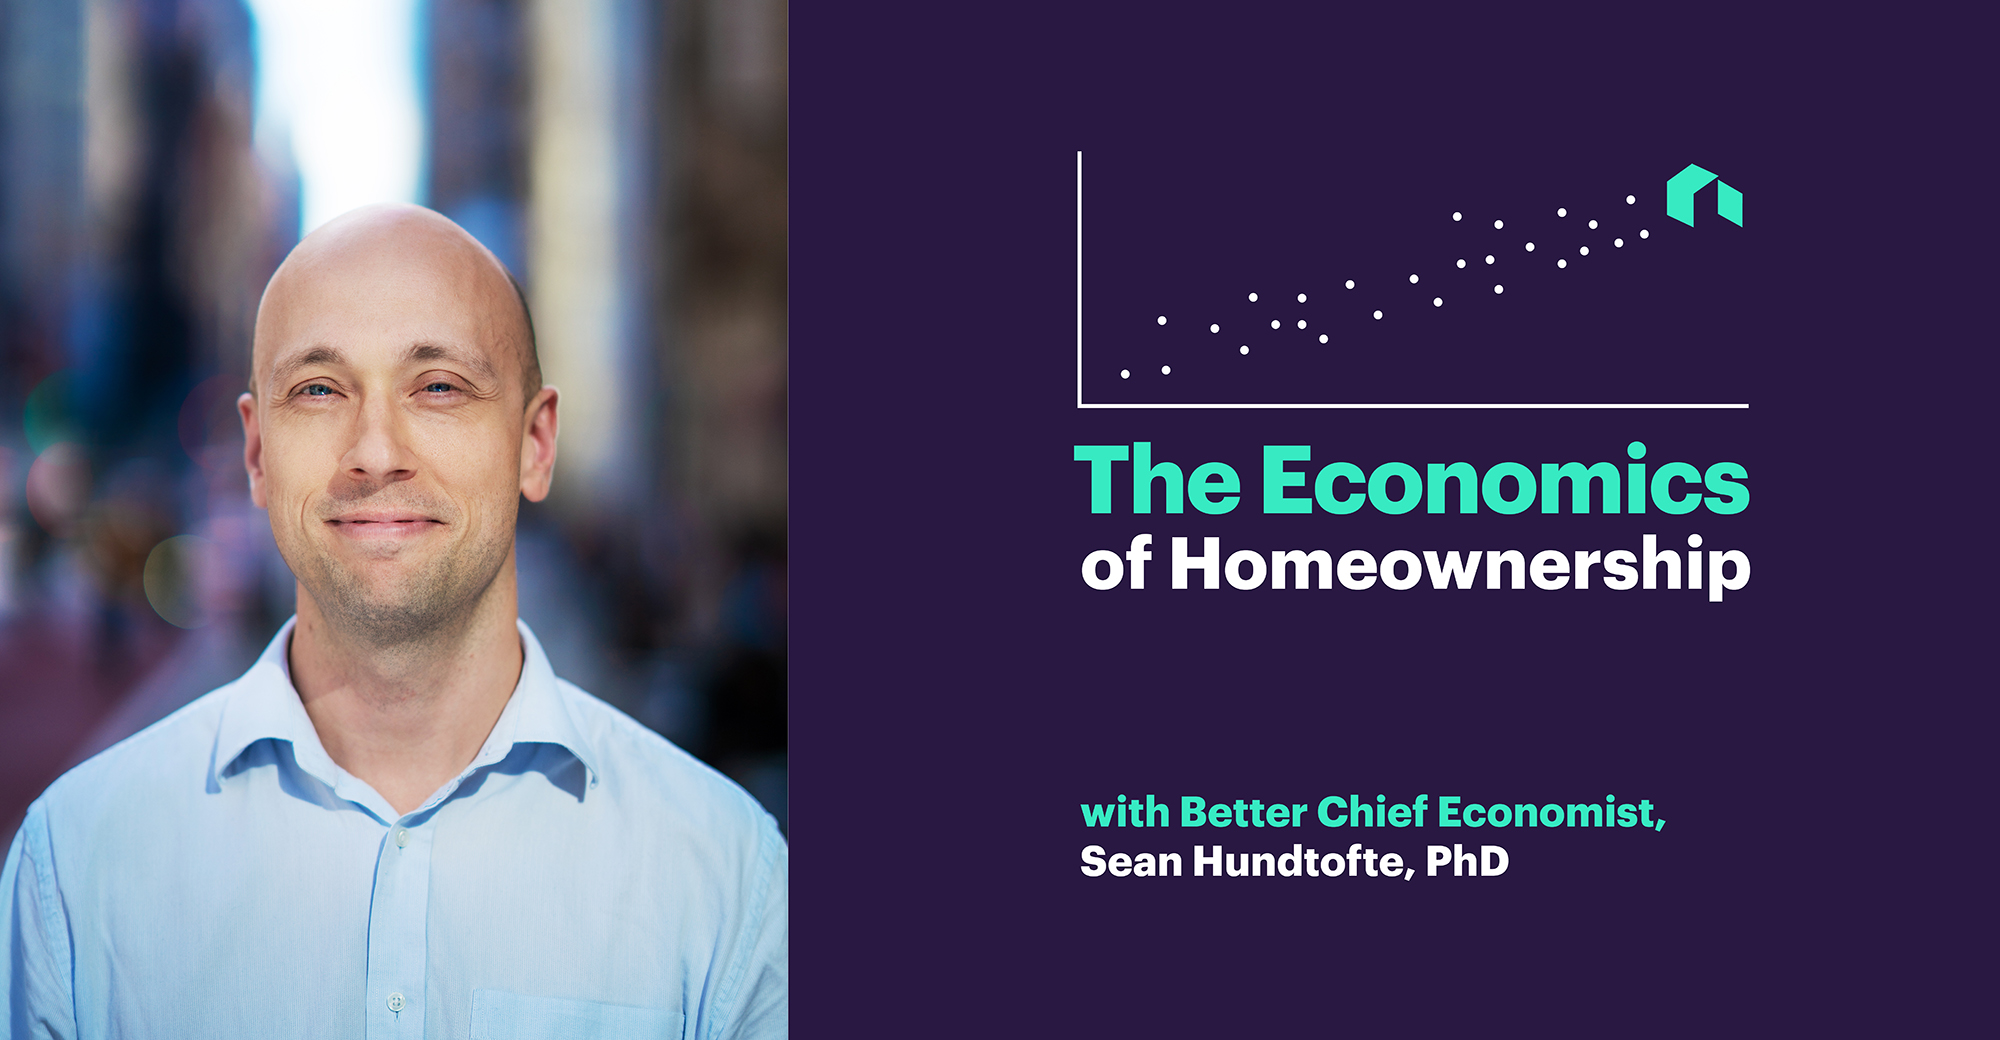 Two Panels: A Photo of Past Better Chief Economist Sean Hundtofte, PhD and The Economics of Homeownership